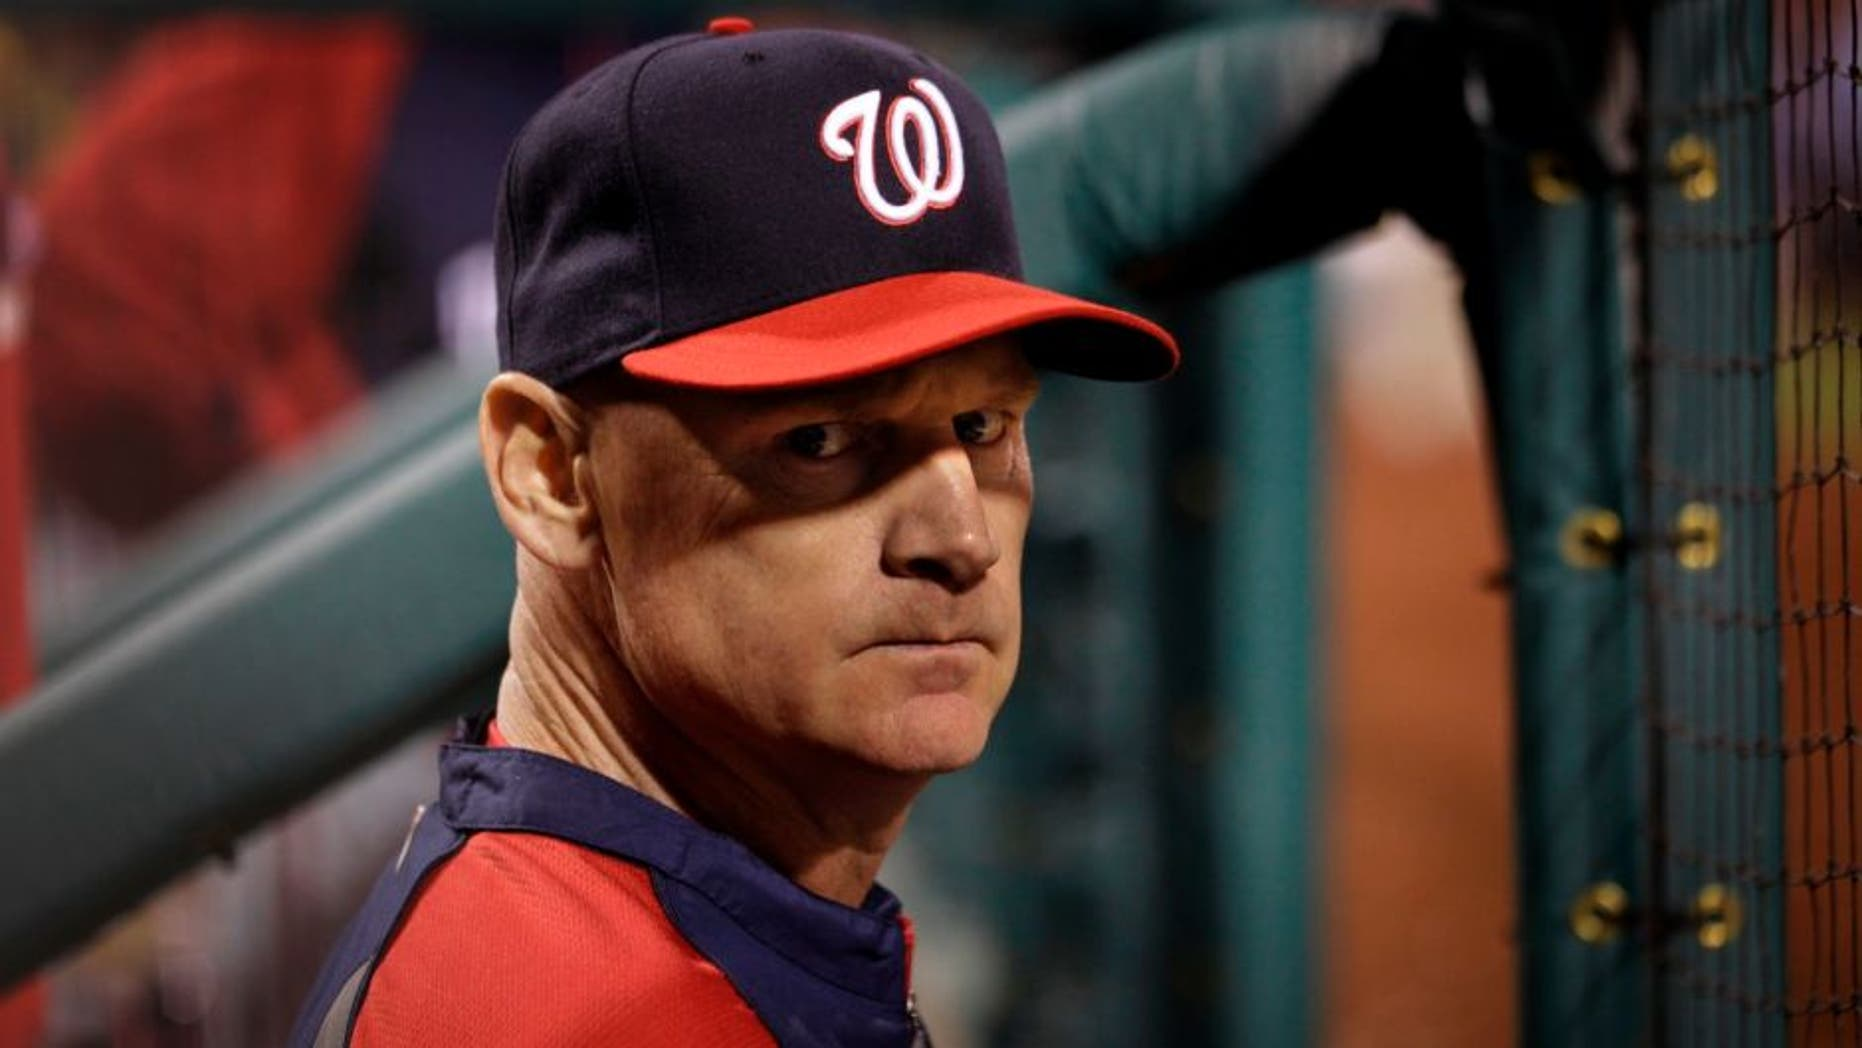 May 11, 2014; Oakland, CA, USA; Washington Nationals manager Matt Williams (9) stands in the dugout against the Oakland Athletics during the sixth inning at O.co Coliseum. The Athletics defeated the Nationals 9-1. Mandatory Credit: Kyle Terada-USA TODAY Sports